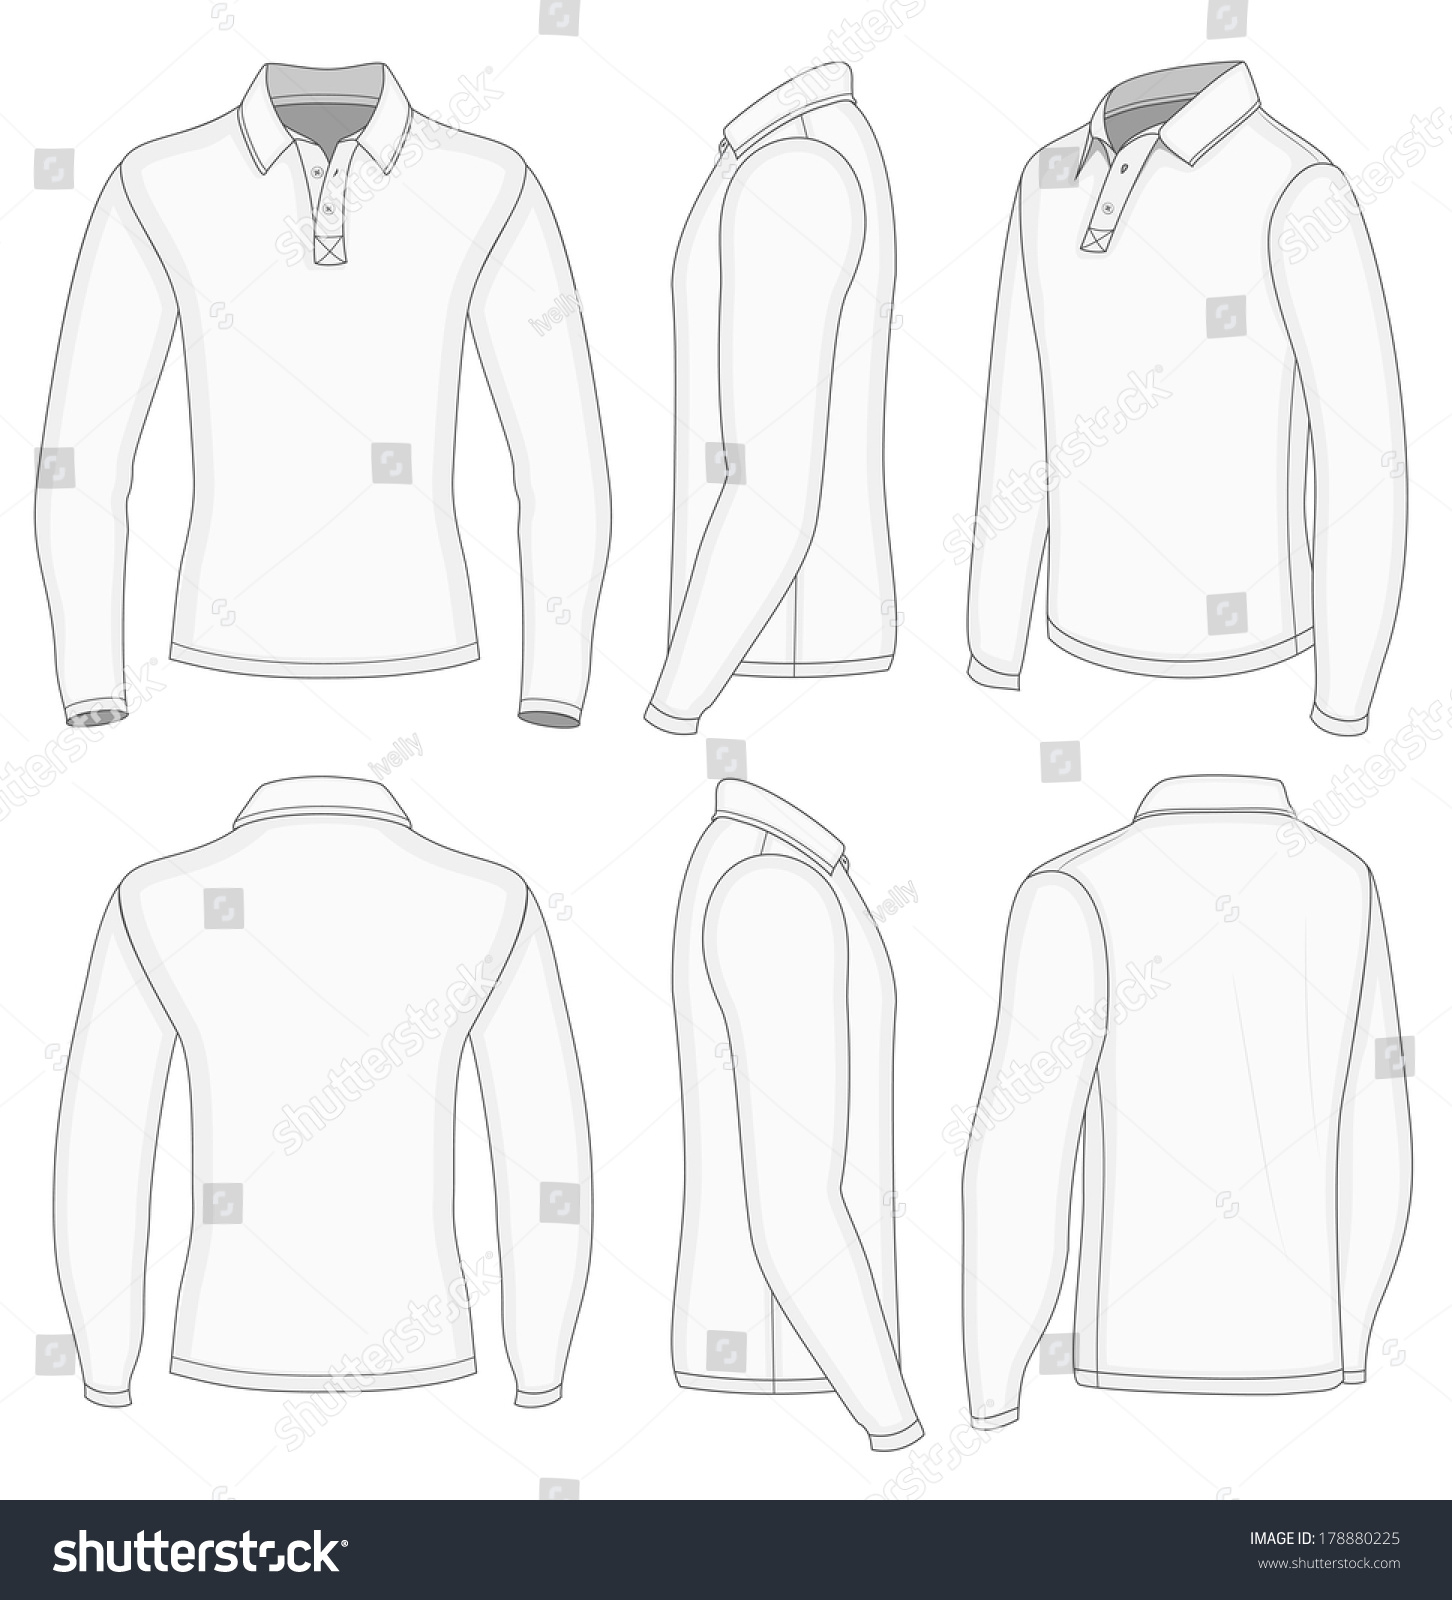 Image Result For Design Size On Front And Back Of Shirts: All Views Men'S White Long Sleeve Shirt Design Templates